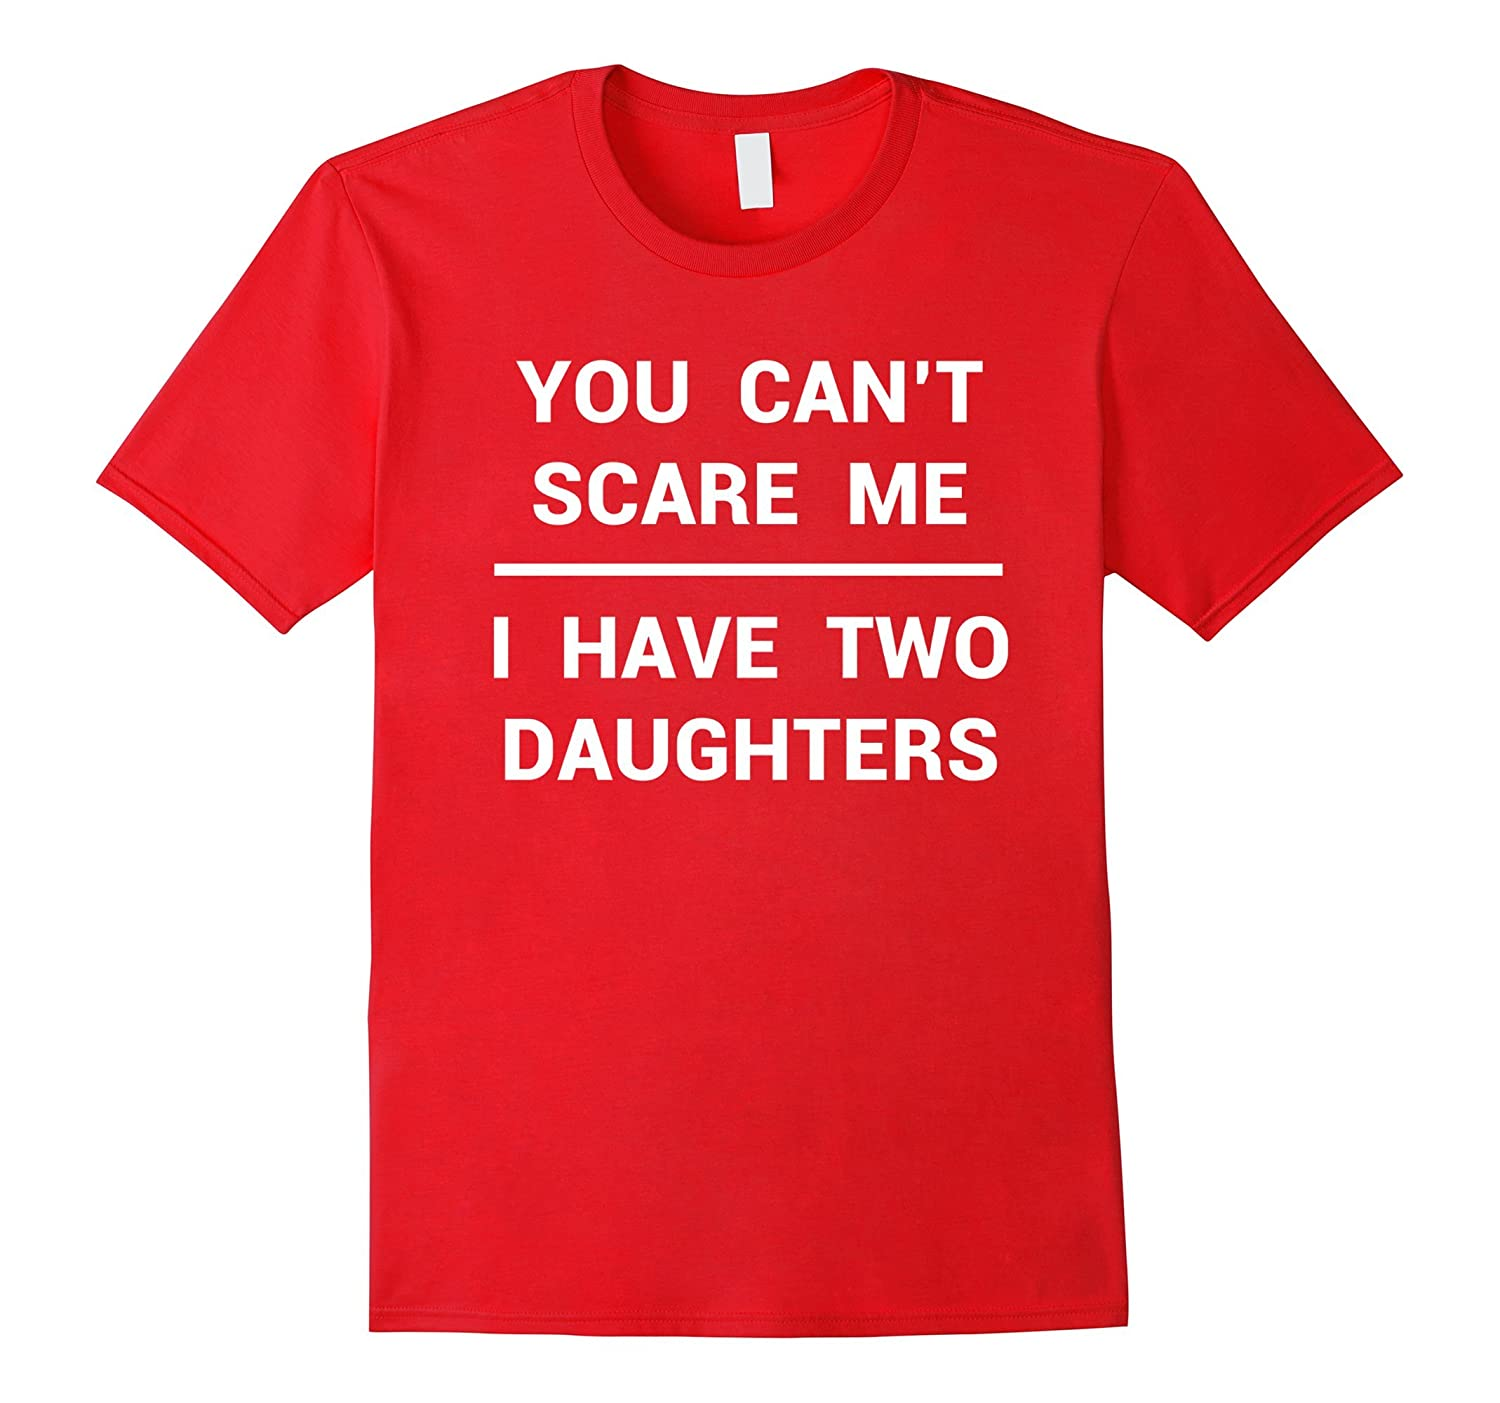 2 Daughters Shirt Funny Fathers Day Gift from Wife Husband-TH